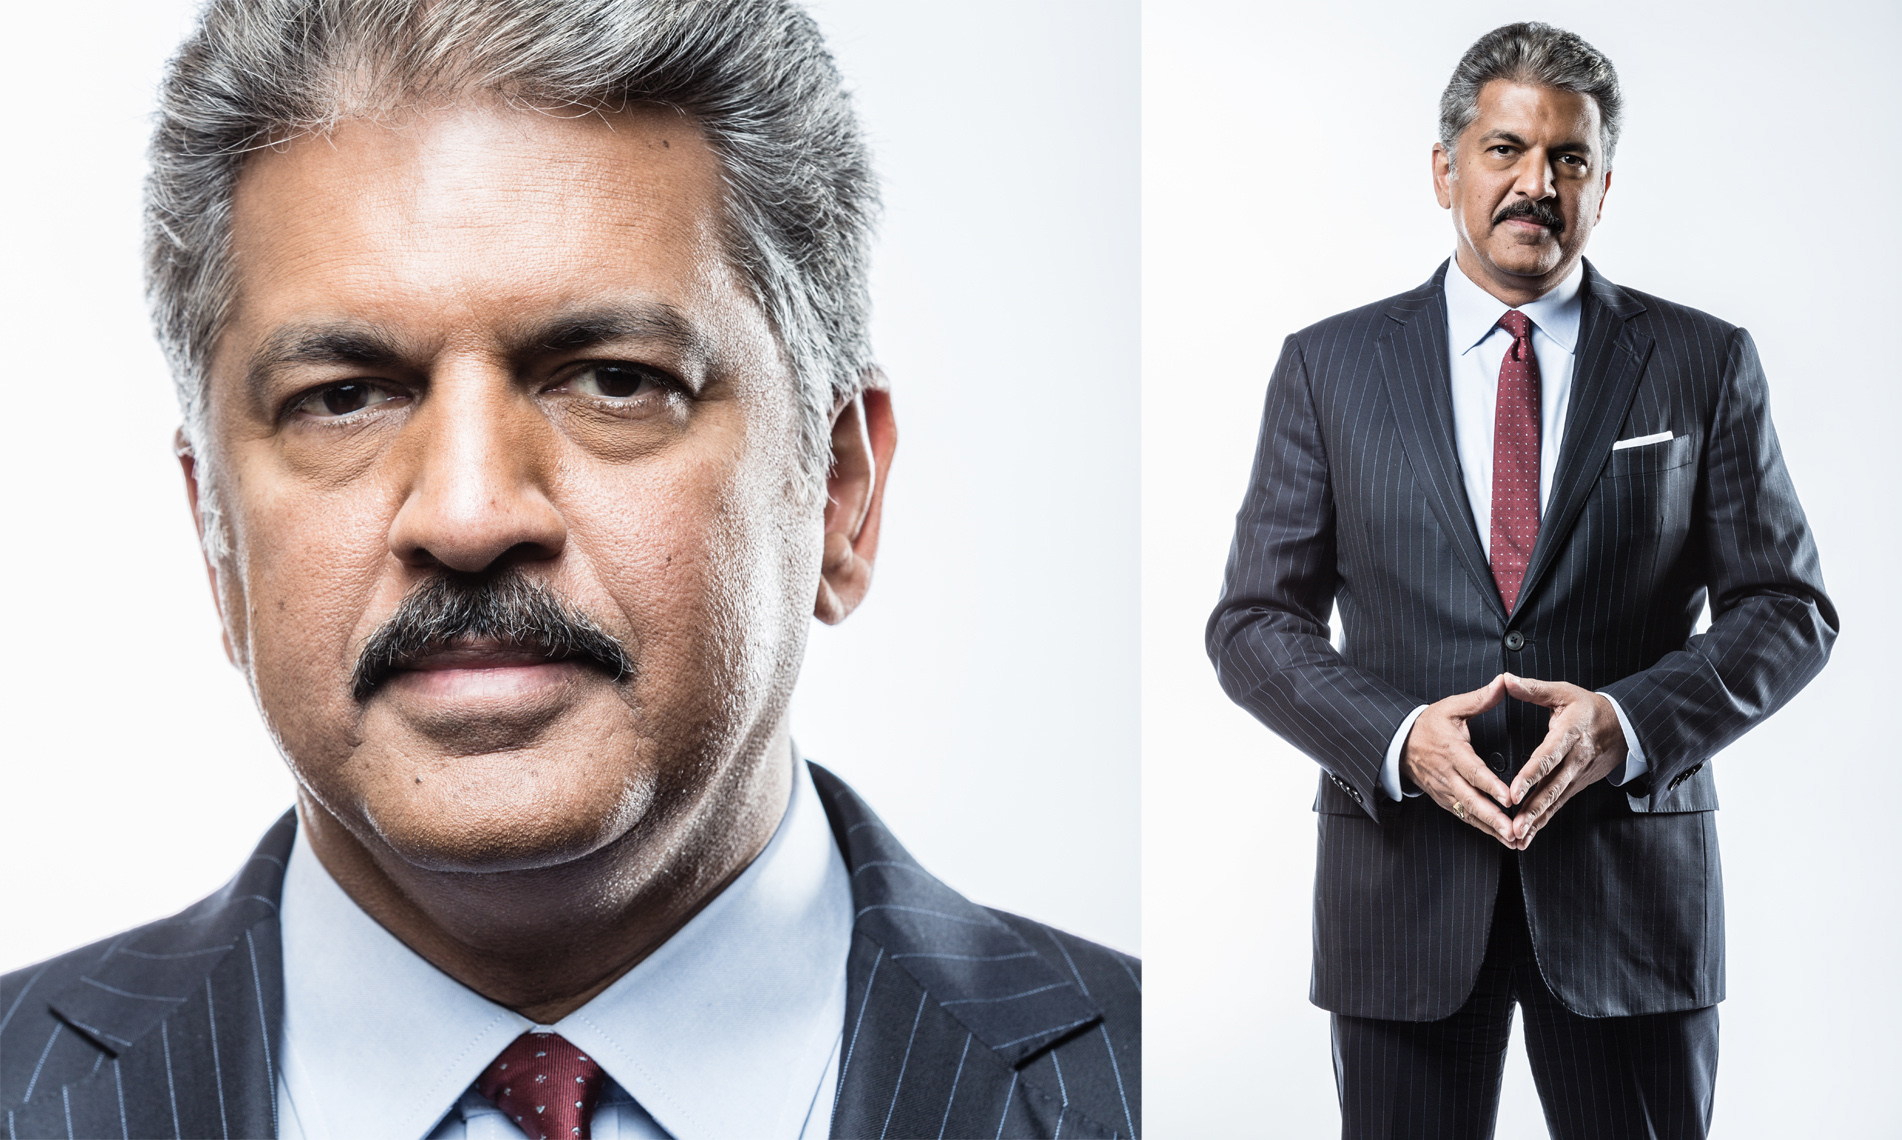 ANAND MAHINDRA • MAHINDRA GROUP • JASON GROW PHOTOGRAPHY